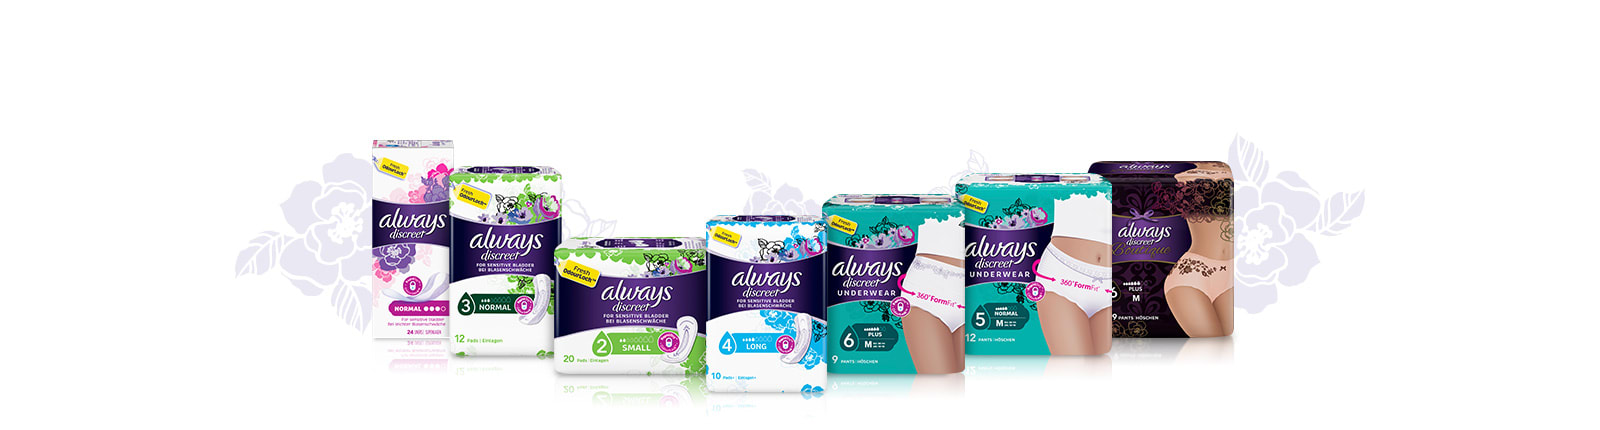 ALWAYS DISCREET free samples, coupons and offers